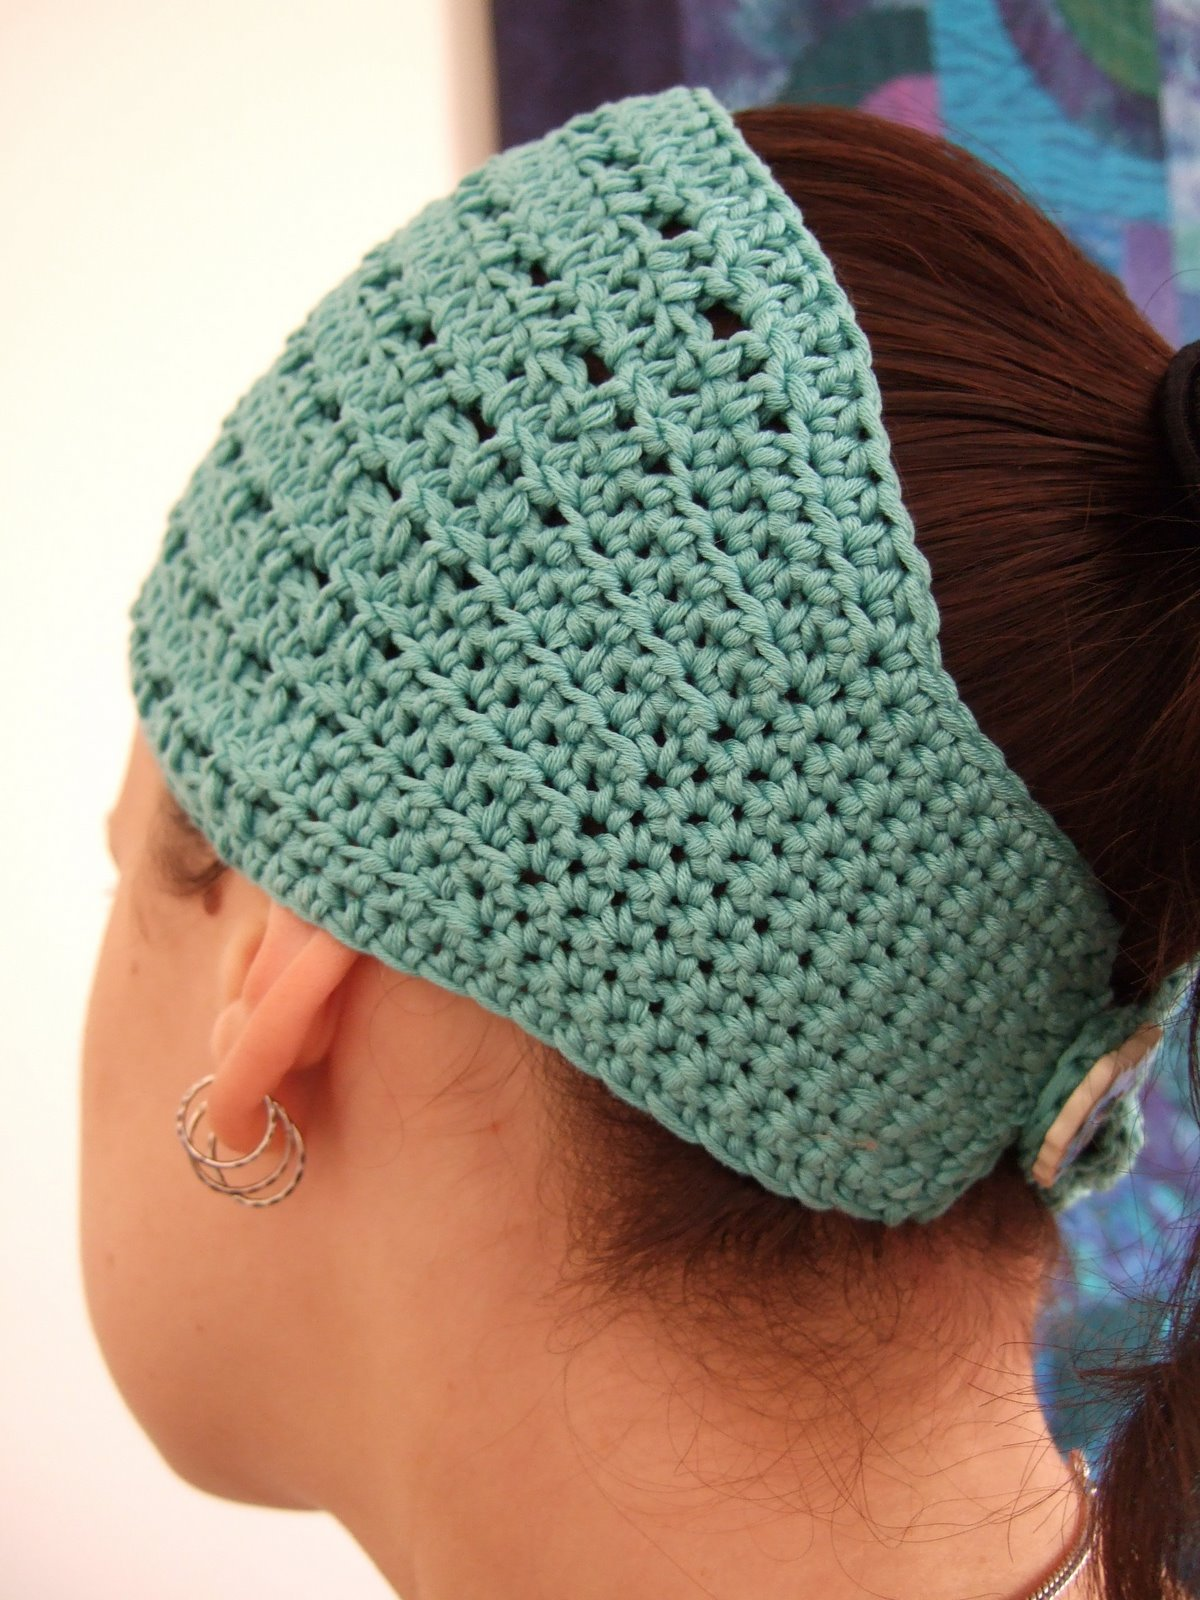 Free Crochet Pattern For Easy Headband : >Free pattern : Nadie ? crochet headband / hair wrap ...